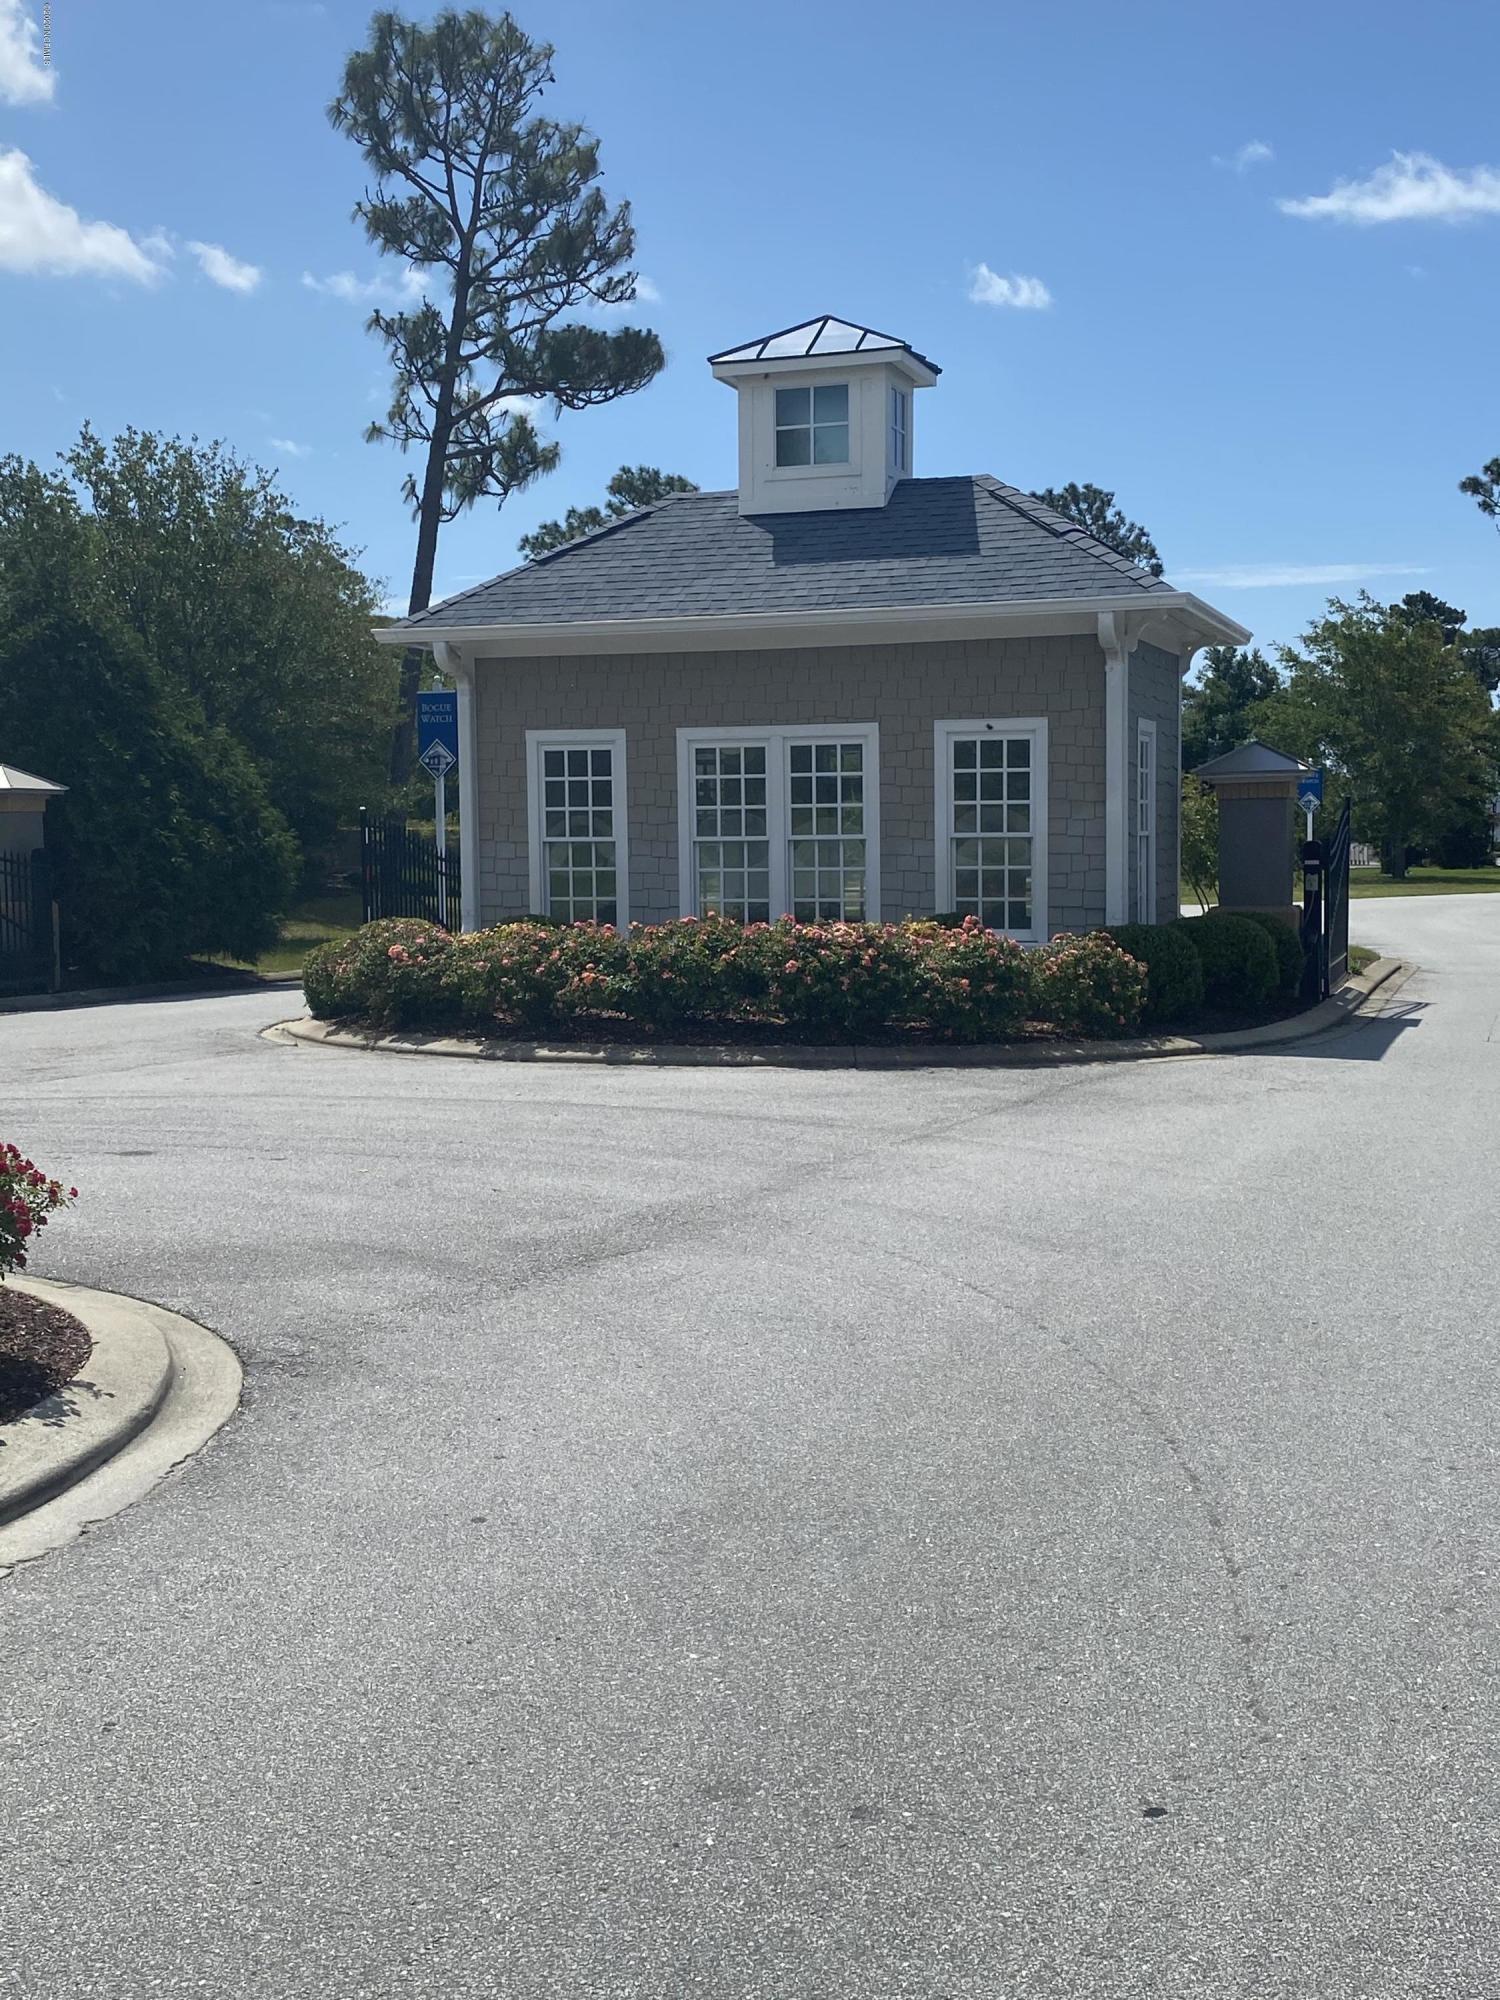 100 Bogue Harbor Court, Newport, North Carolina 28570, ,Undeveloped,For sale,Bogue Harbor,100218964